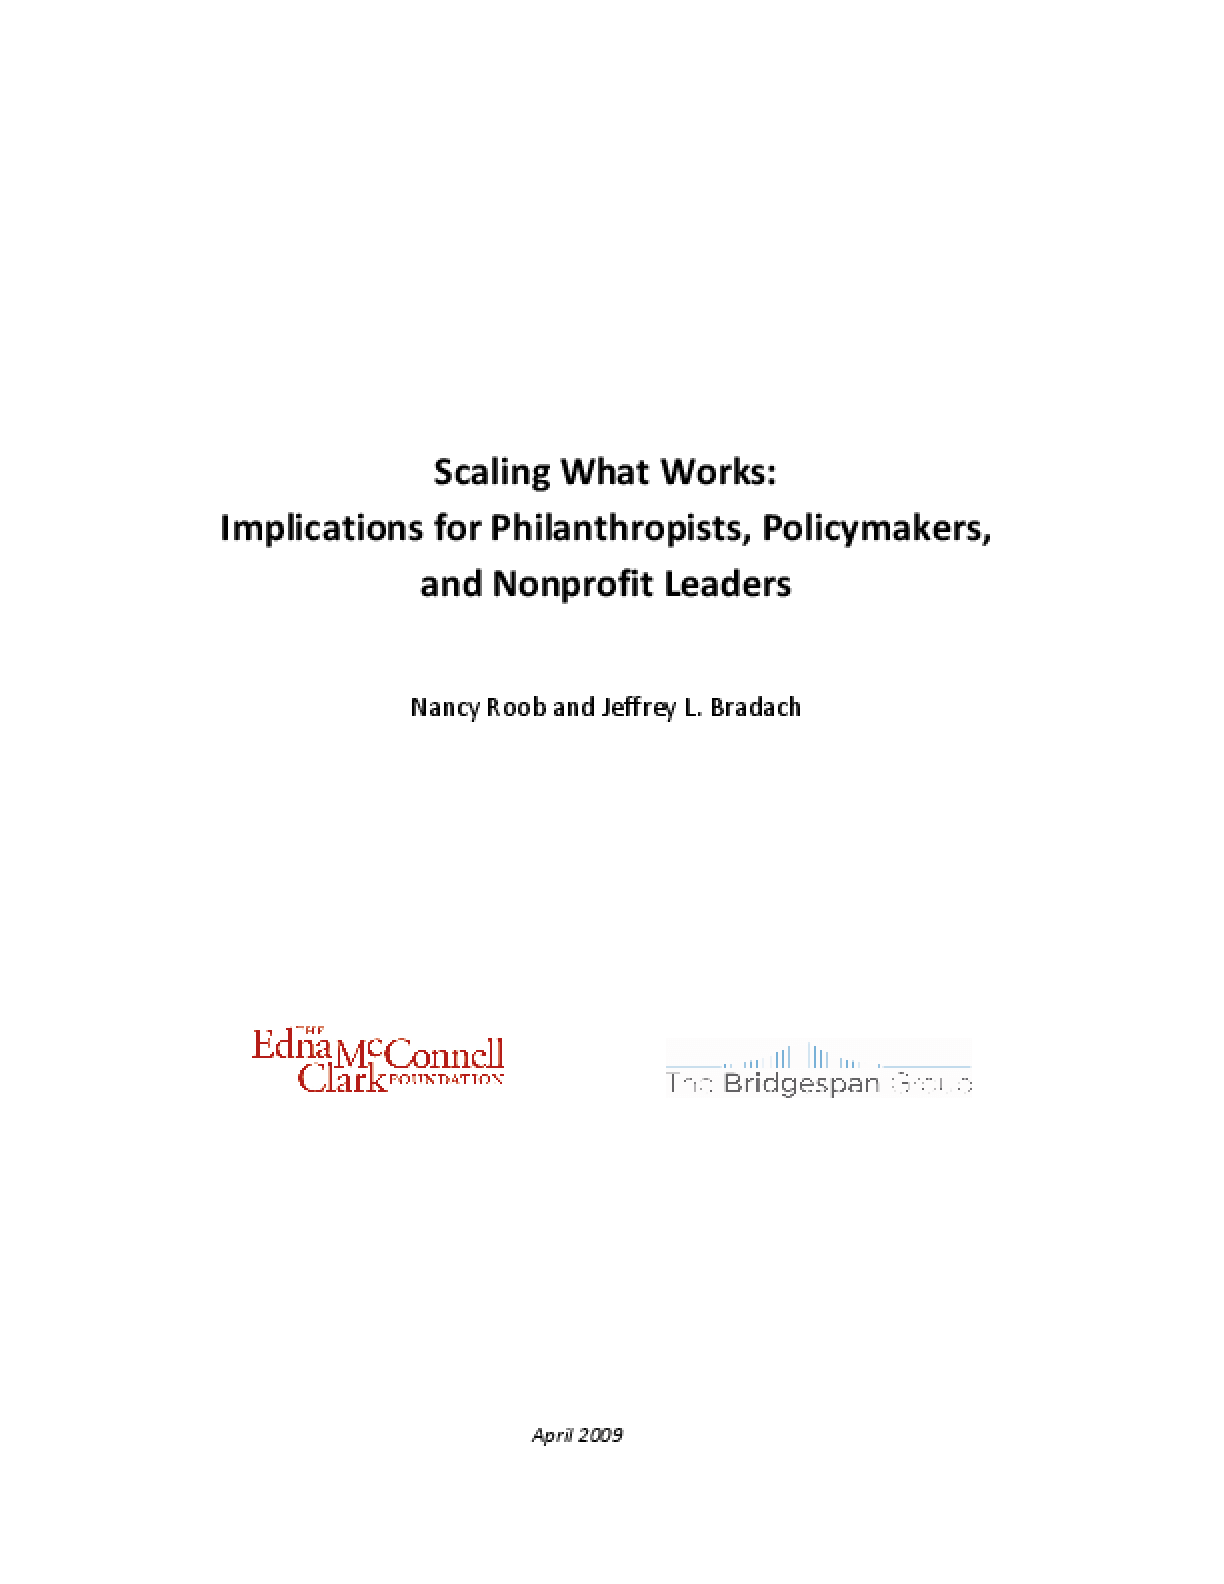 Scaling What Works: Implications for Philanthropists, Policymakers, and Nonprofit Leaders